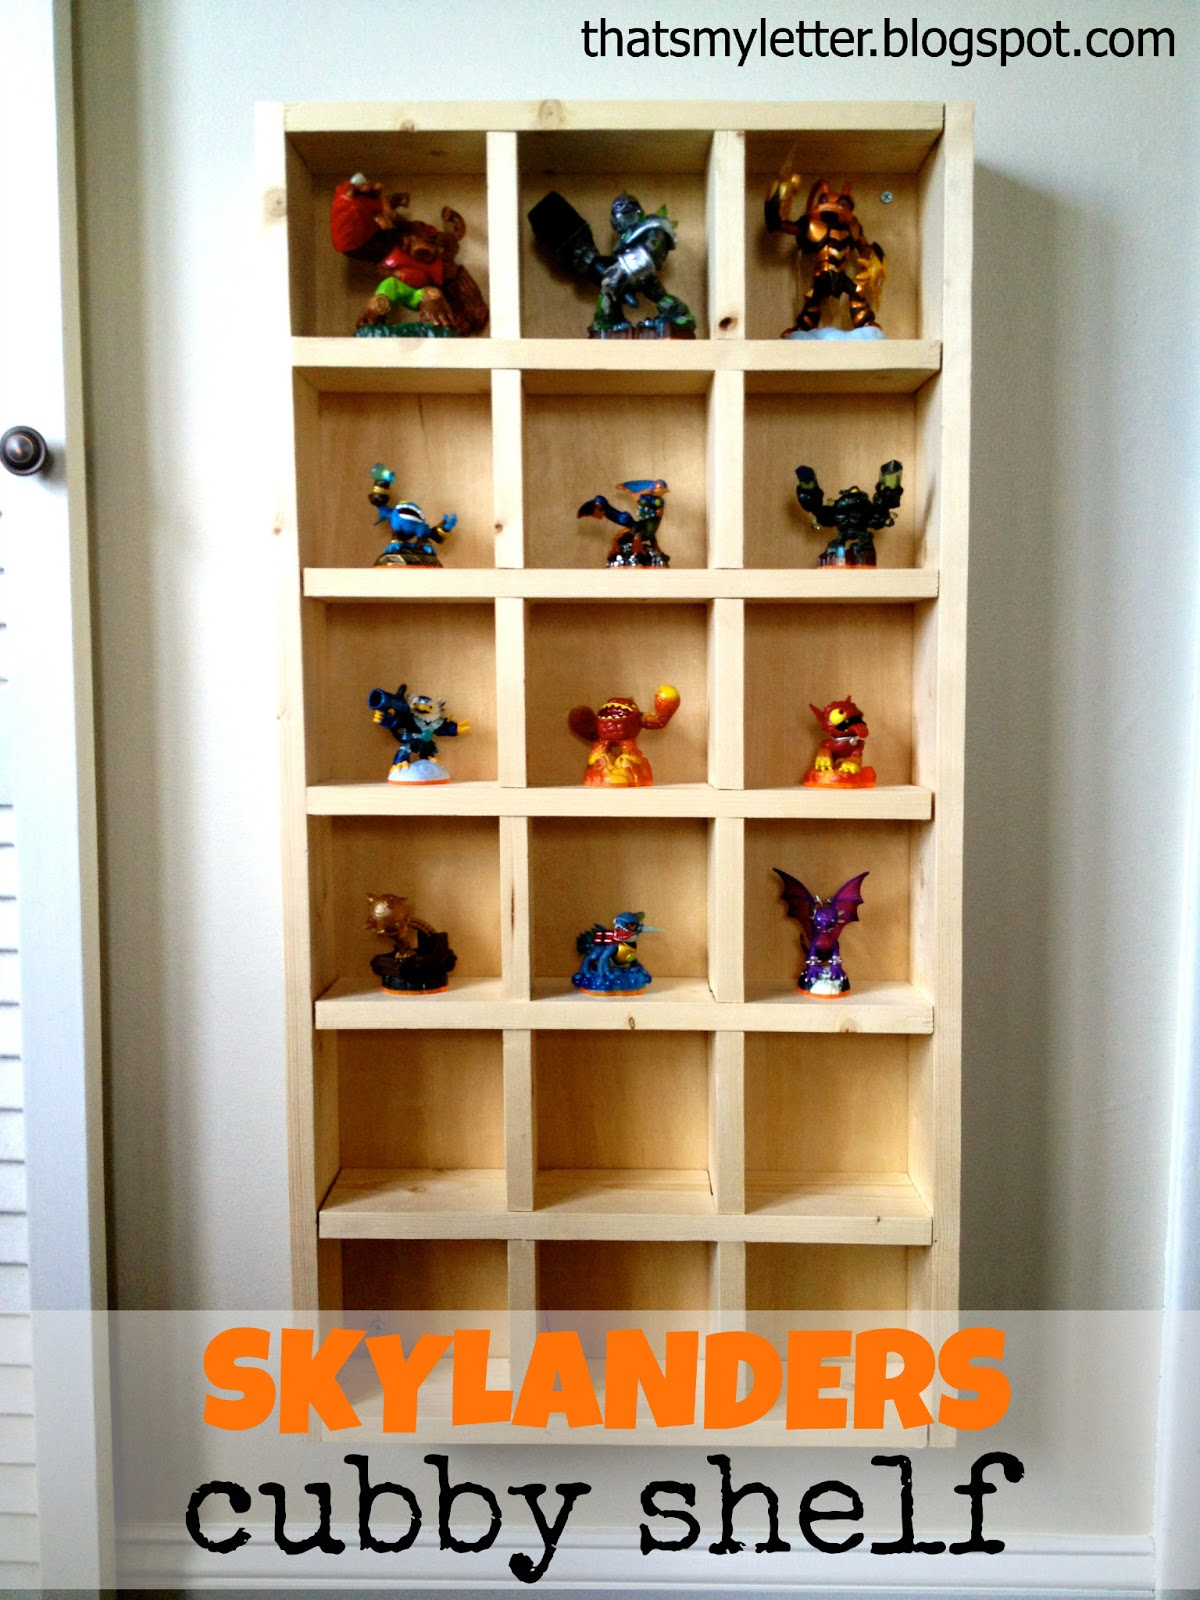 Delightful Build The Perfect Cubby Storage Shelf For Skylanders (or Any Play  Figurines) Using Modified Cubby Shelf Plans From Ana White.